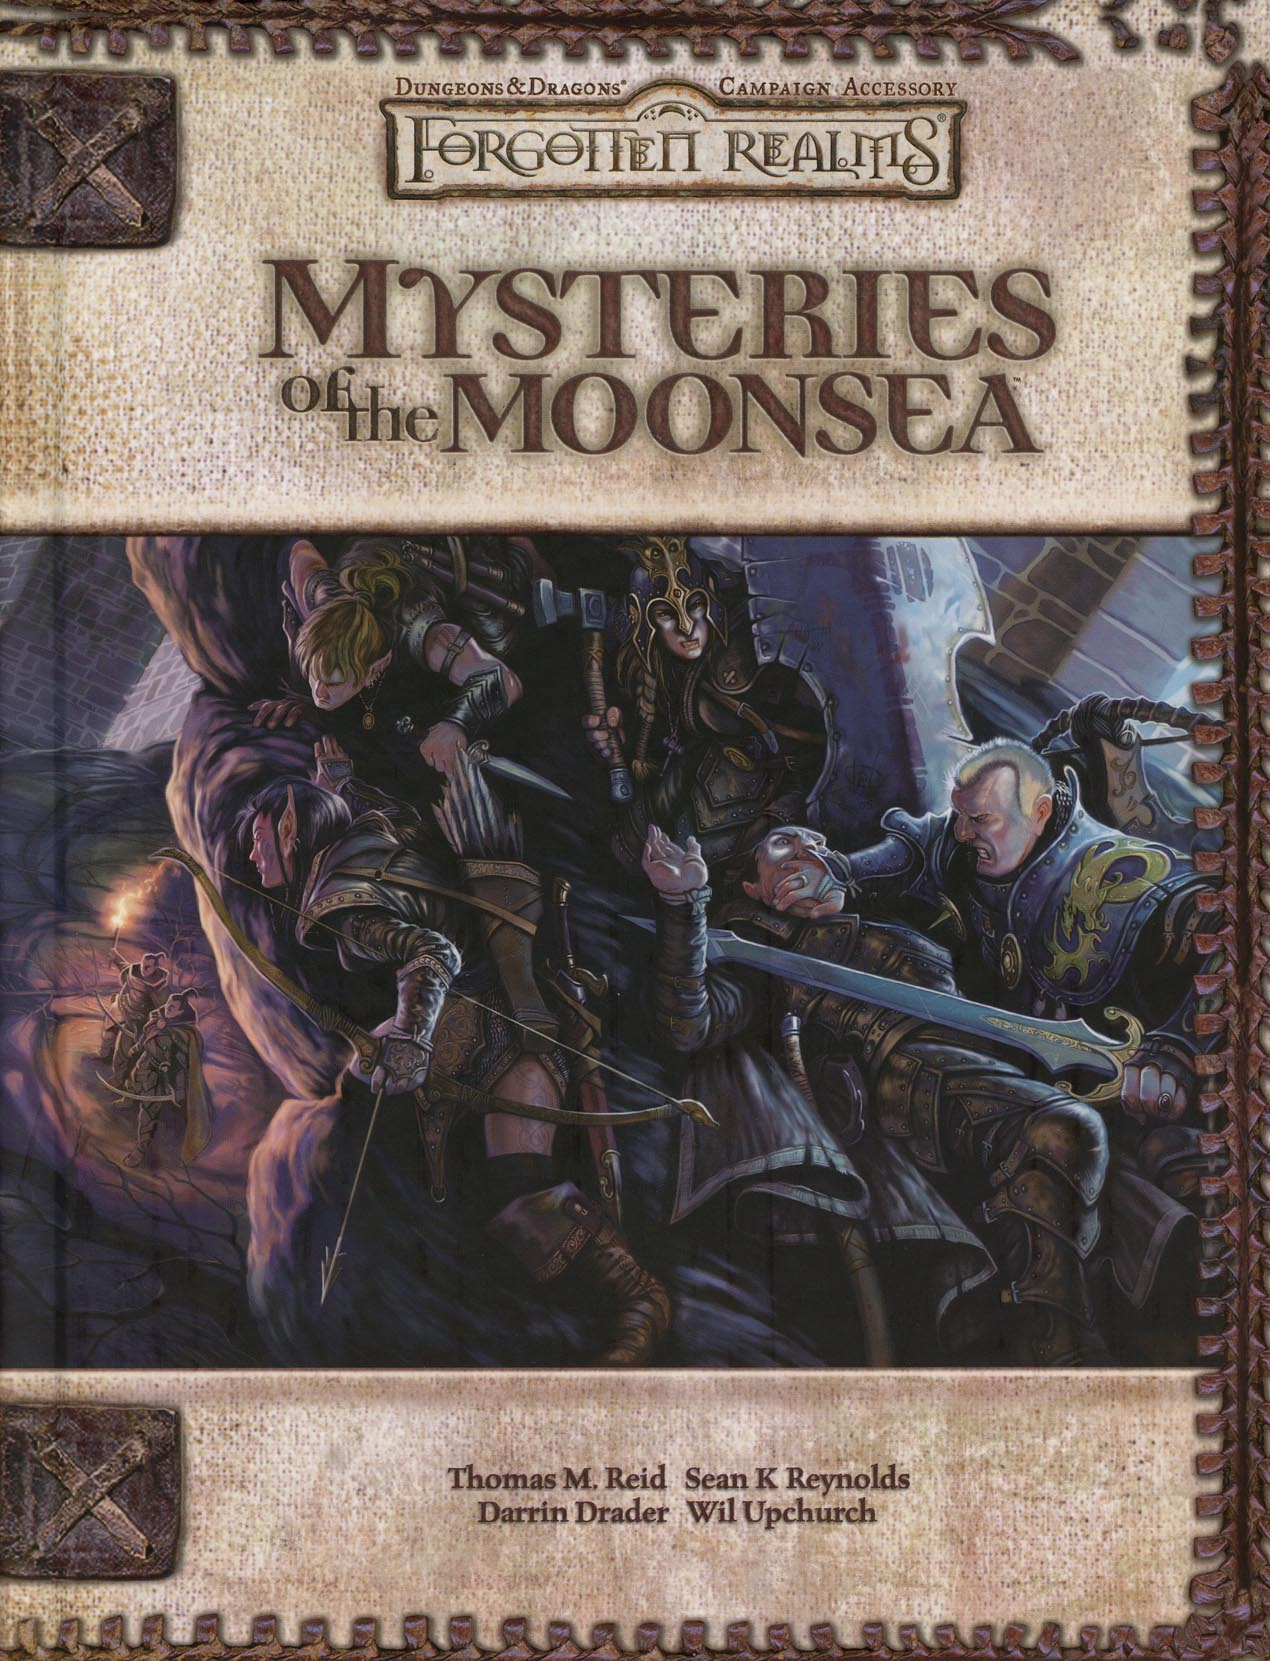 Mysteries of the Moonsea